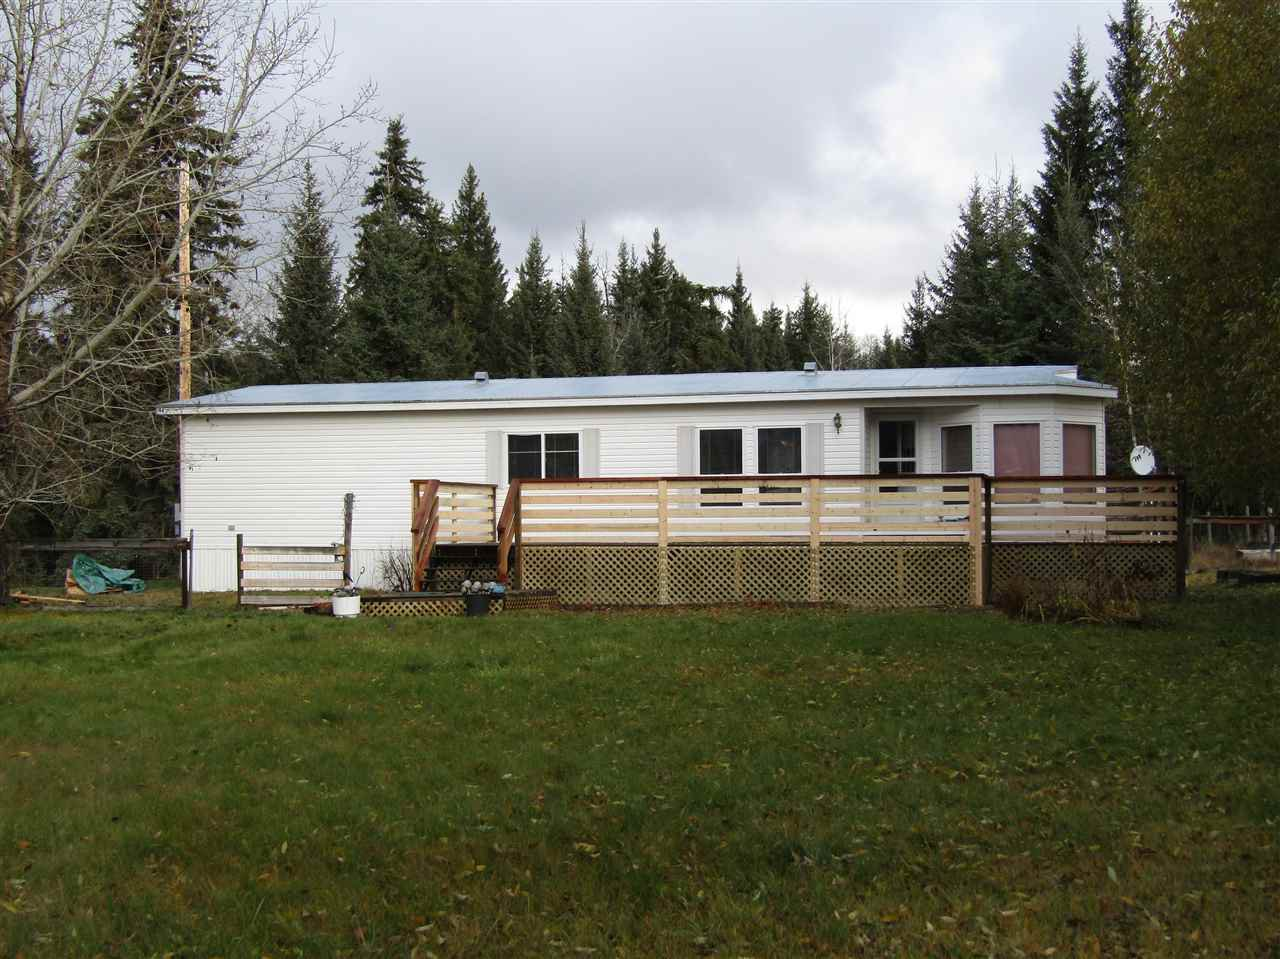 Main Photo: 2999 BIG LAKE-TYEE LAKE Road in Williams Lake: Williams Lake - Rural East Manufactured Home for sale (Williams Lake (Zone 27))  : MLS®# R2120027